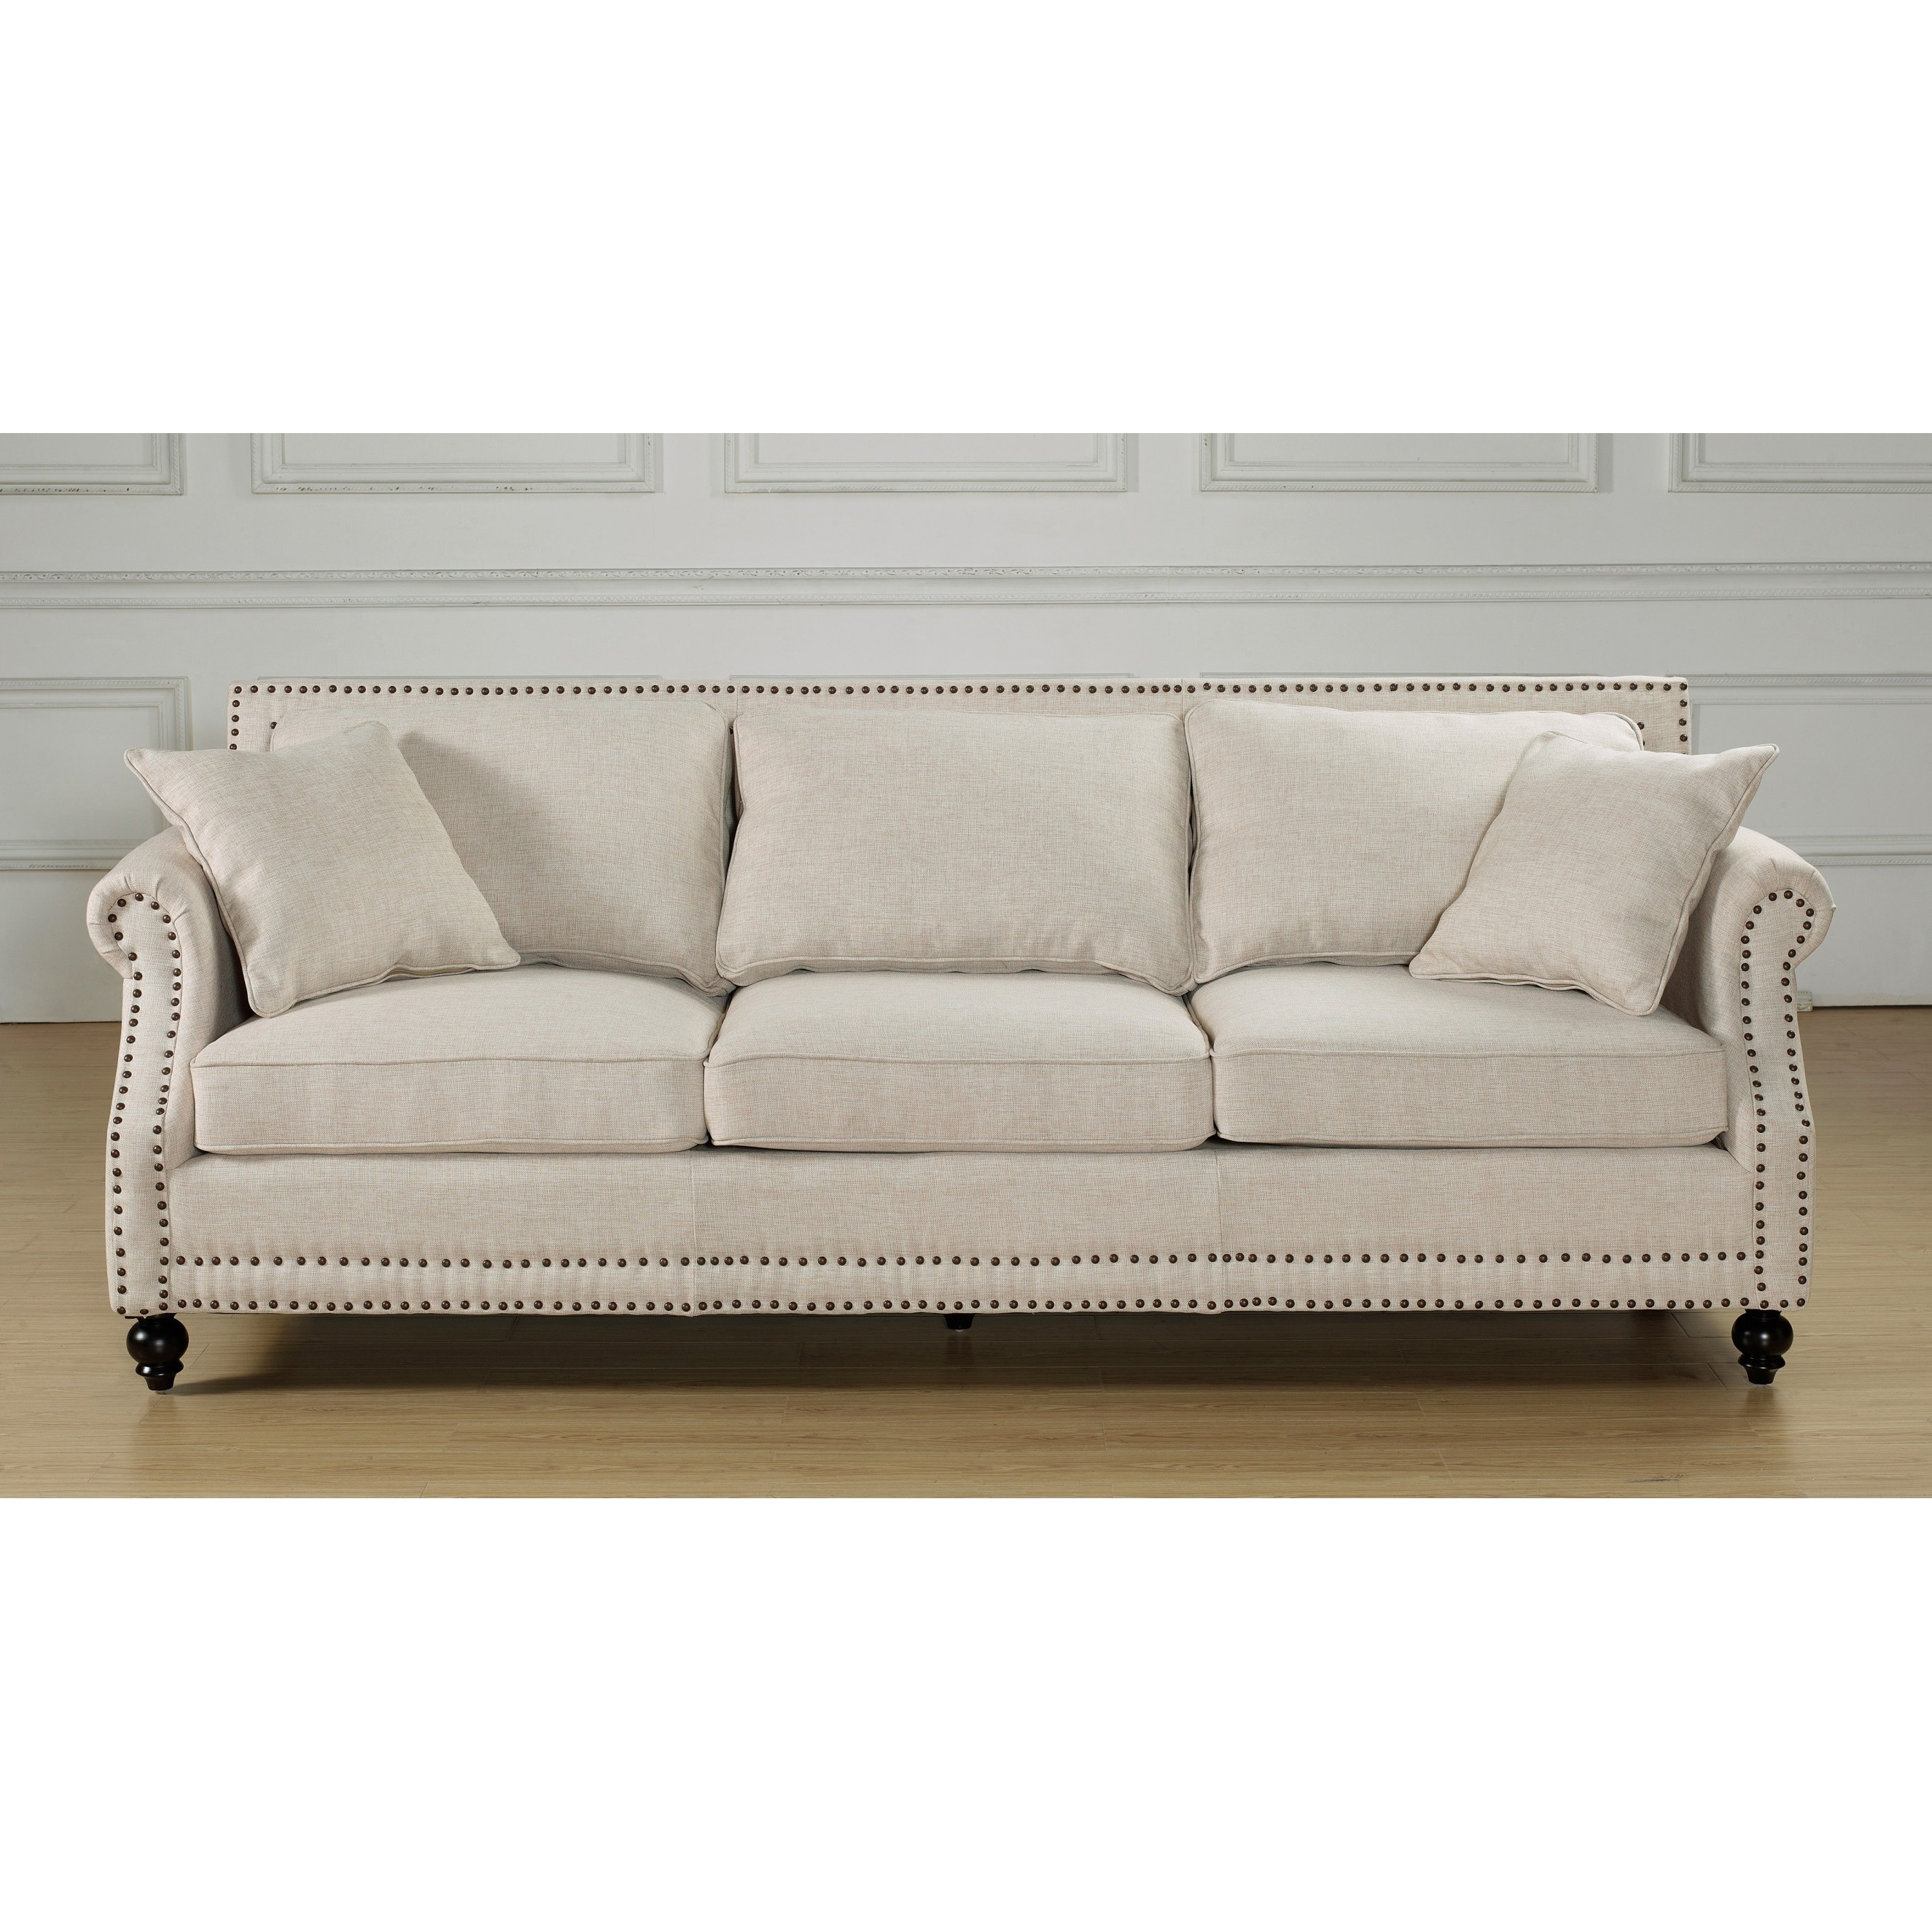 overstock sofa small white leather bed camden beige linen shopping great deals